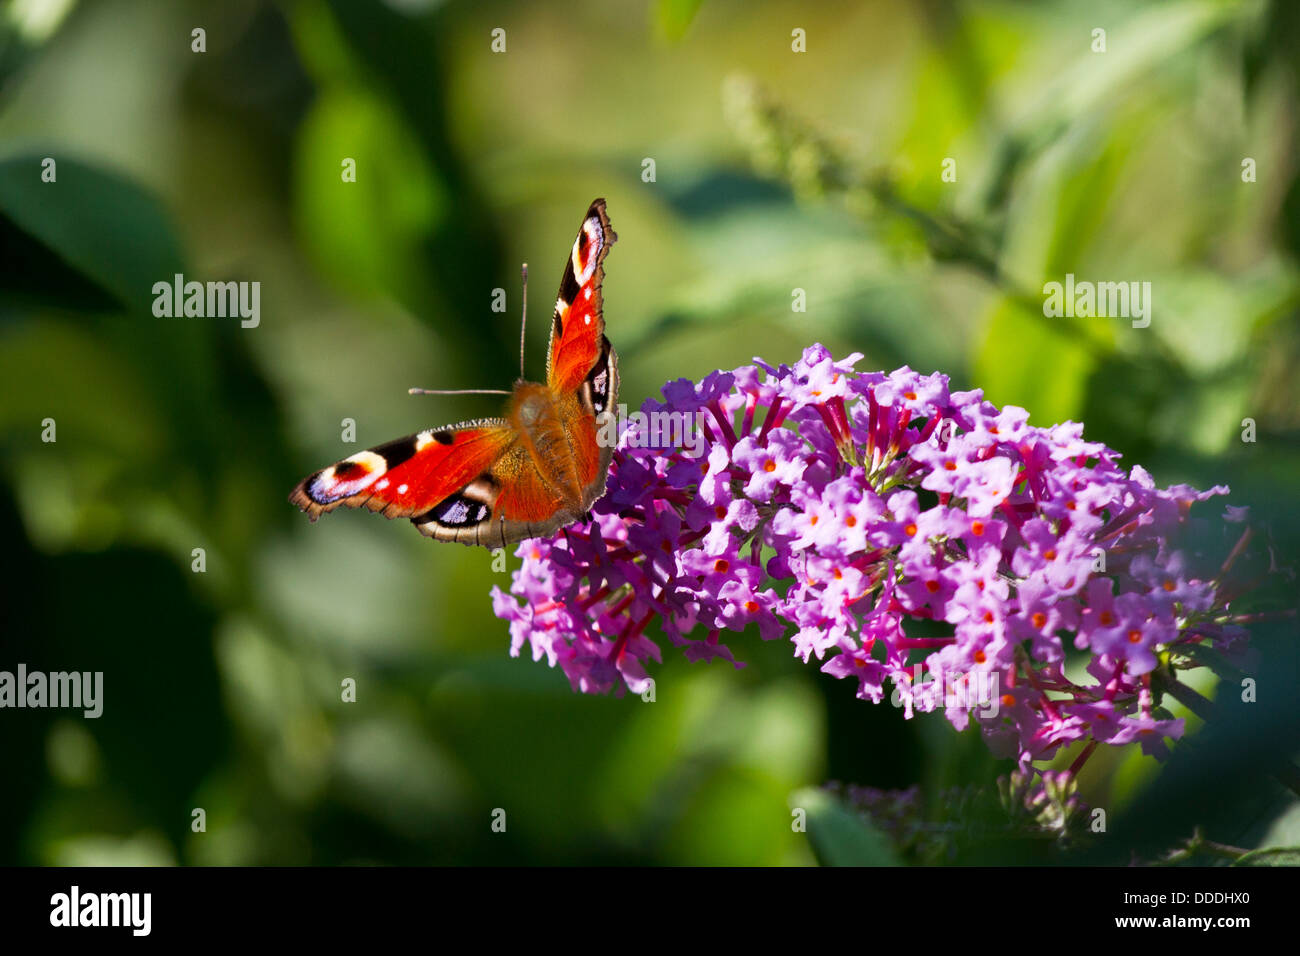 Peacock Butterfly - Stock Image